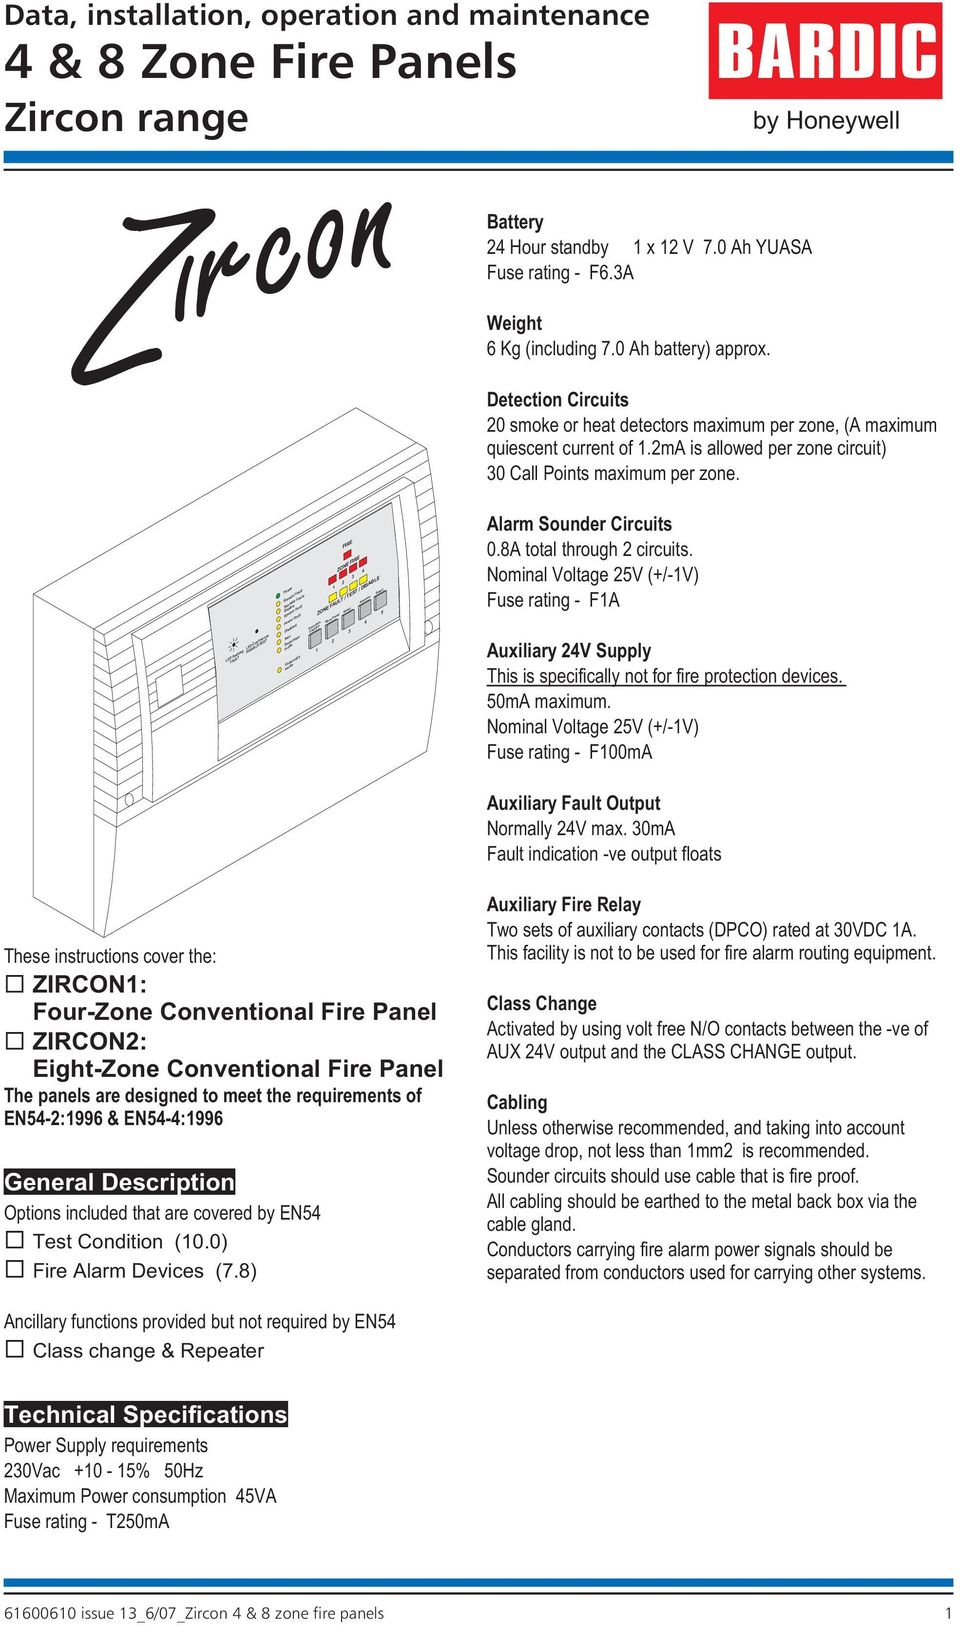 V 7.0 Ah YUASA Fuse rating F6.3A Weight 6 Kg (including 7.0 Ah battery) approx. Detection Circuits 20 smoke or heat detectors maximum per zone, (A maximum quiescent current of 1.